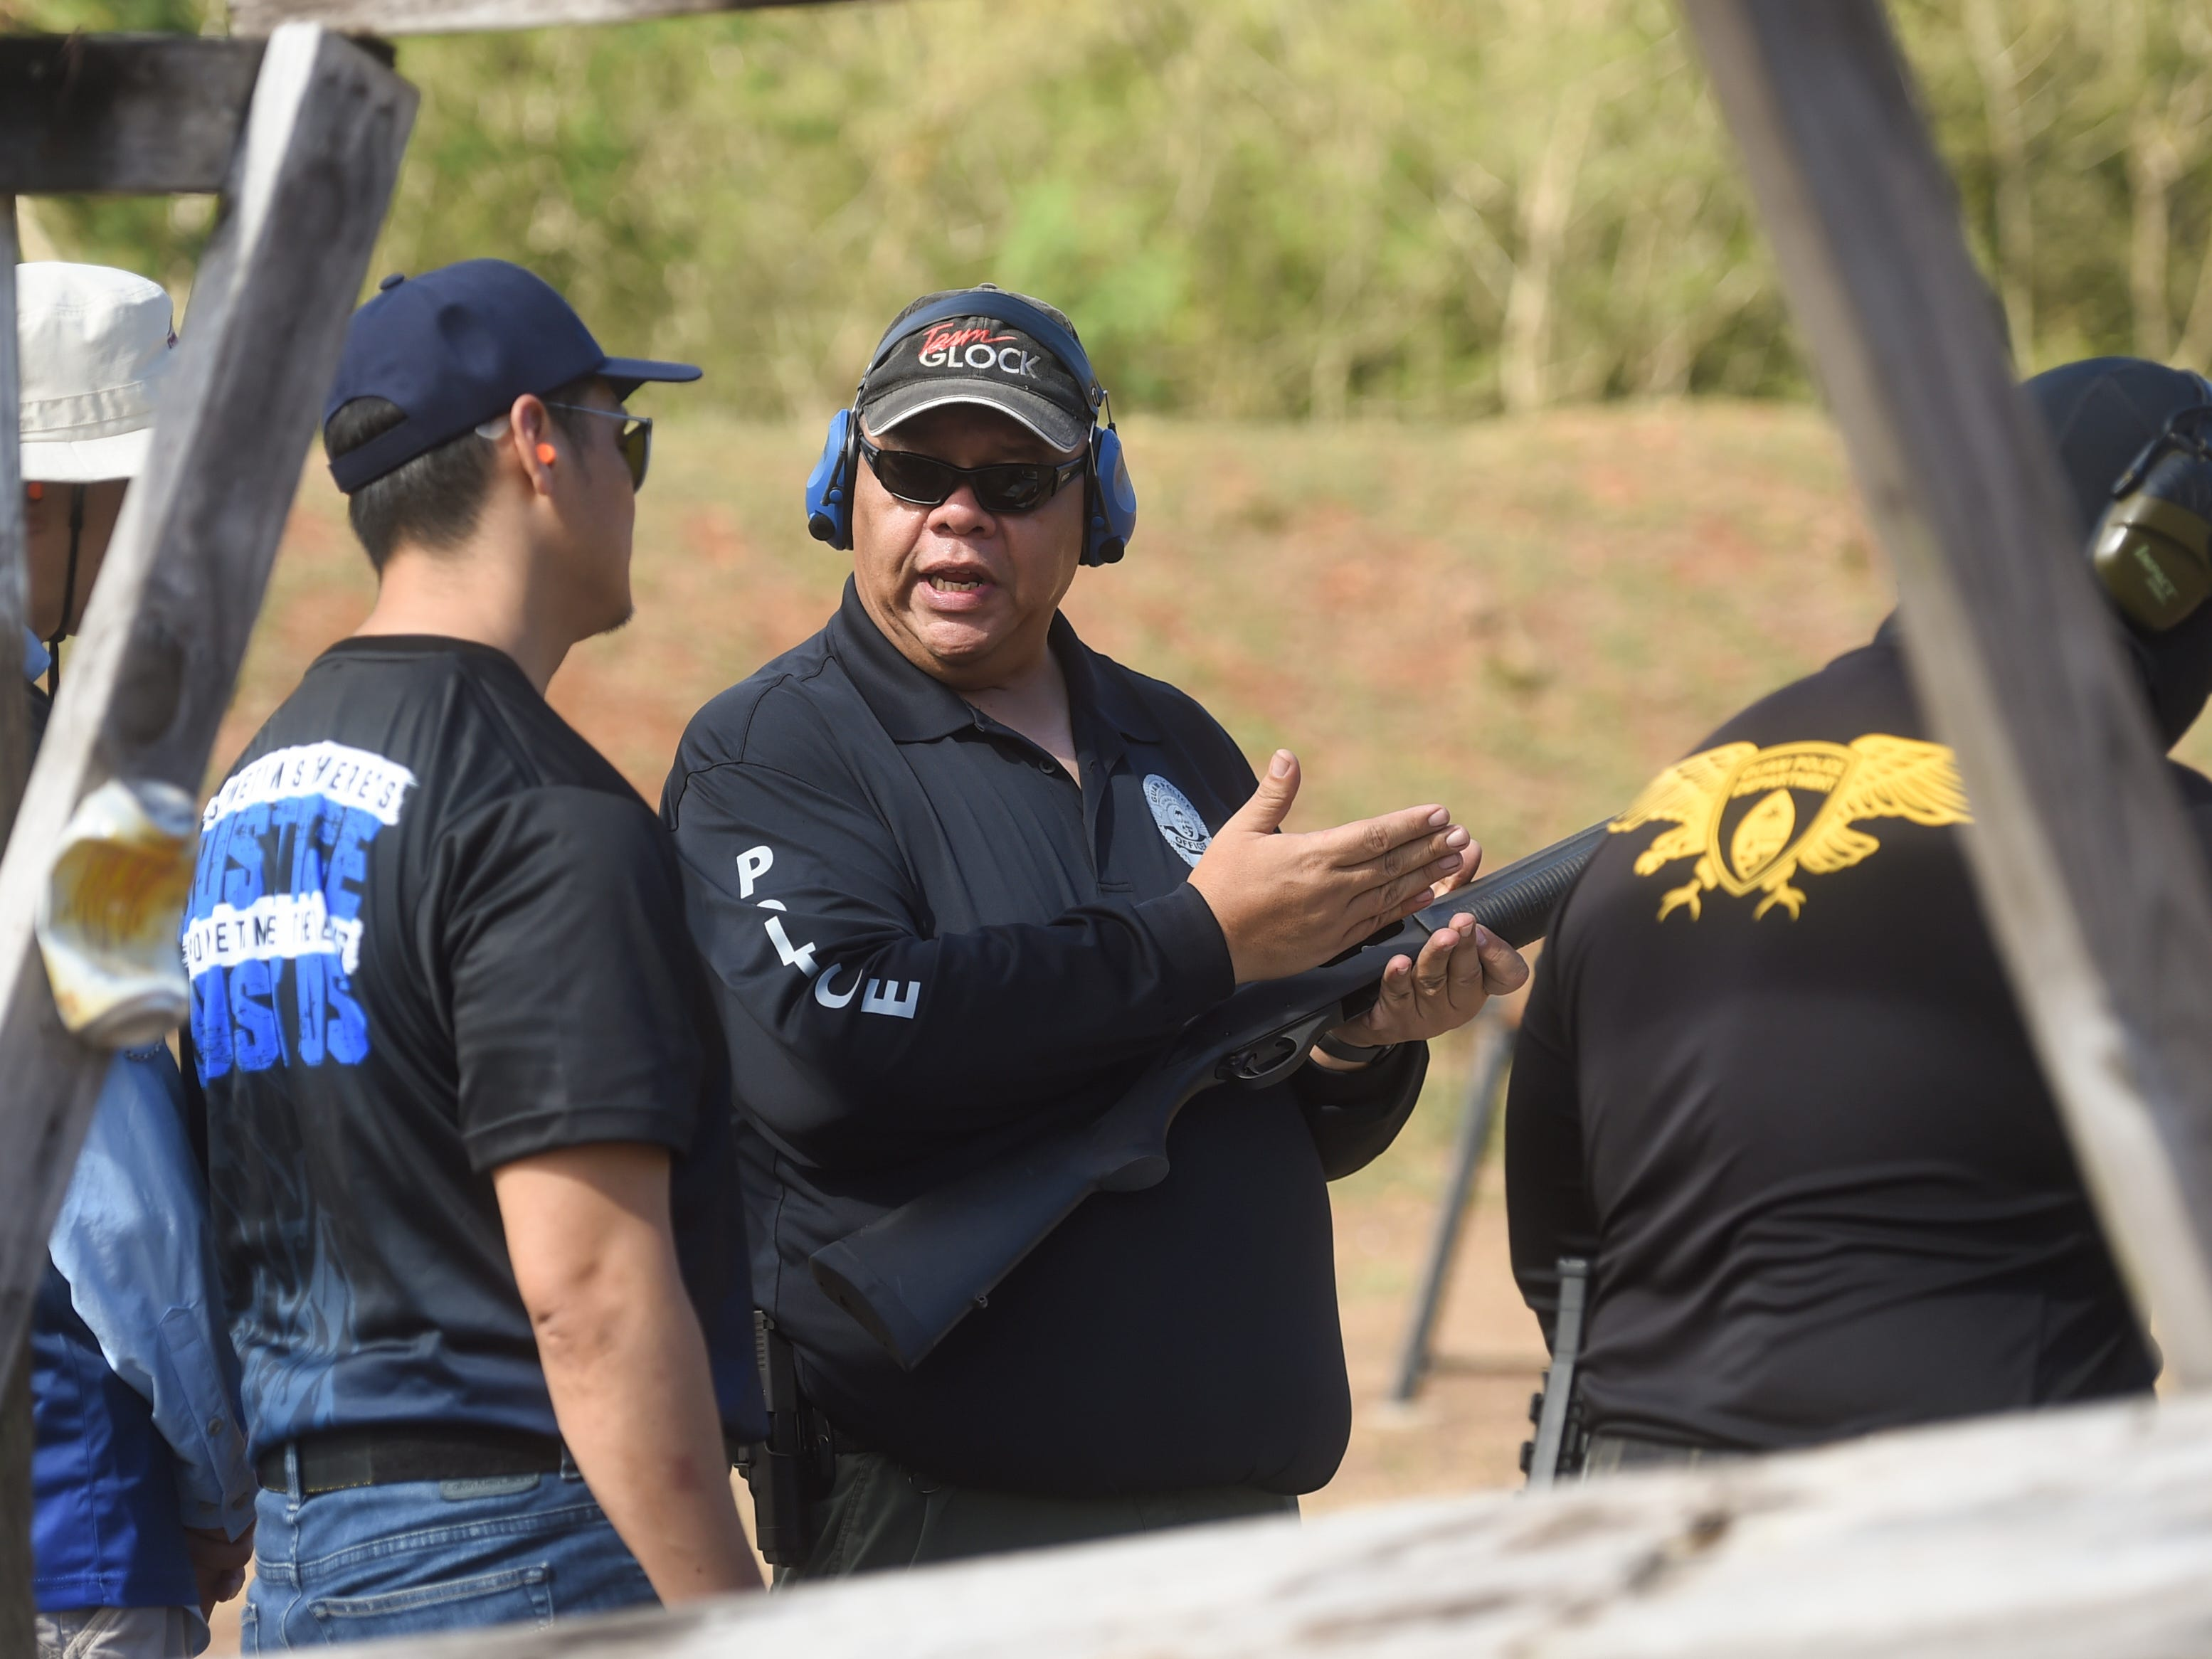 Executives from various companies receive hands-on firearms training by Guam Police Department officers in observance of Police Week at GPD's shooting range on the Guam Community College campus in Mangilao, May 14, 2019.